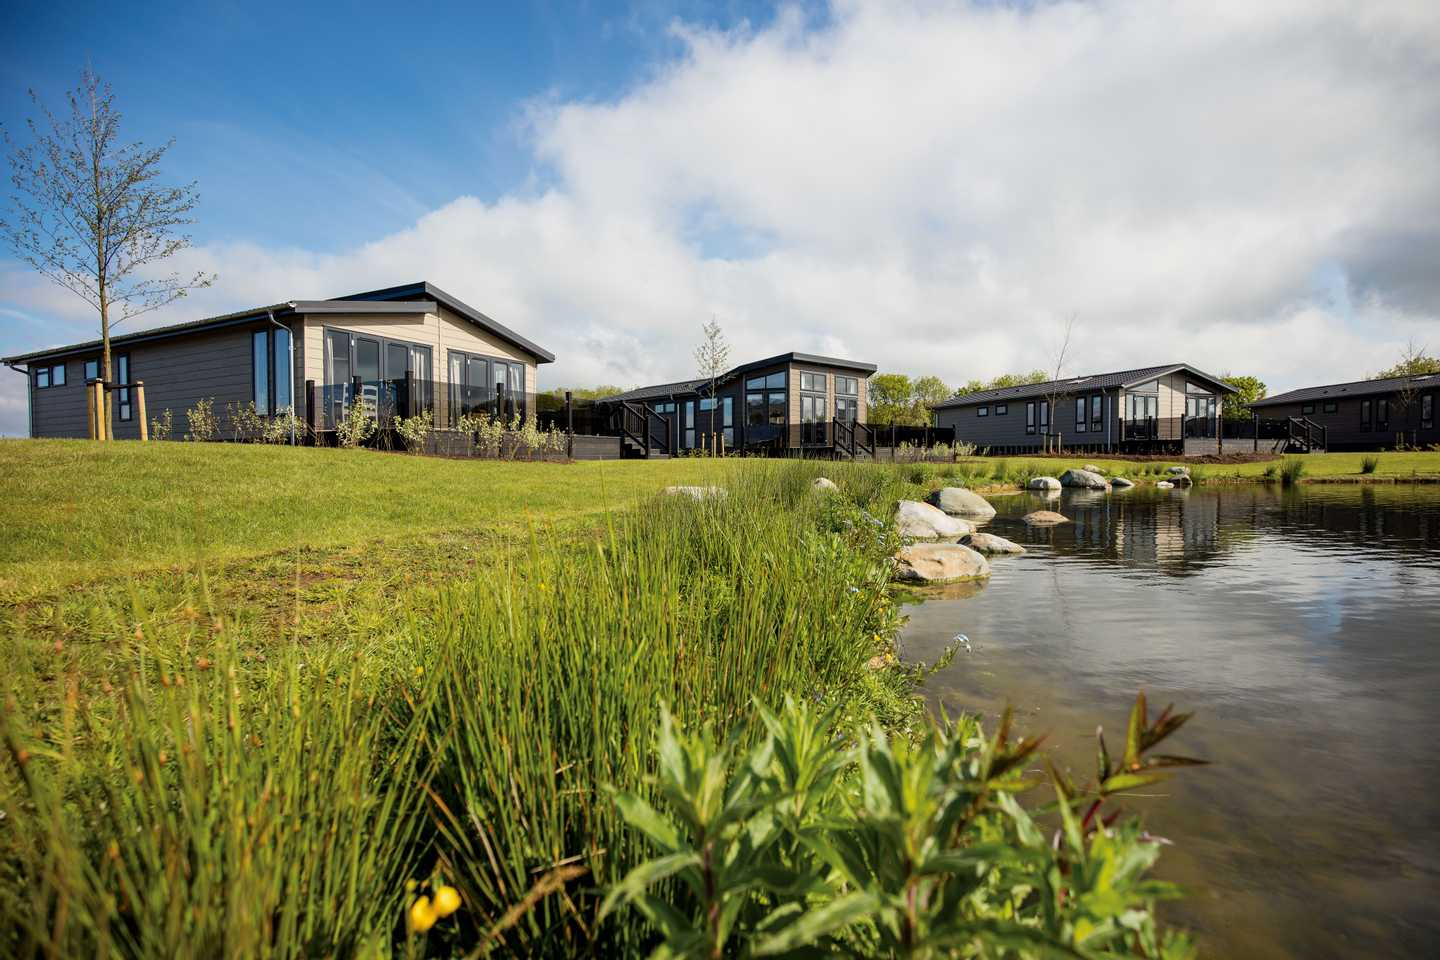 A view from the rocky, natural lake of luxurious lodges with verandas